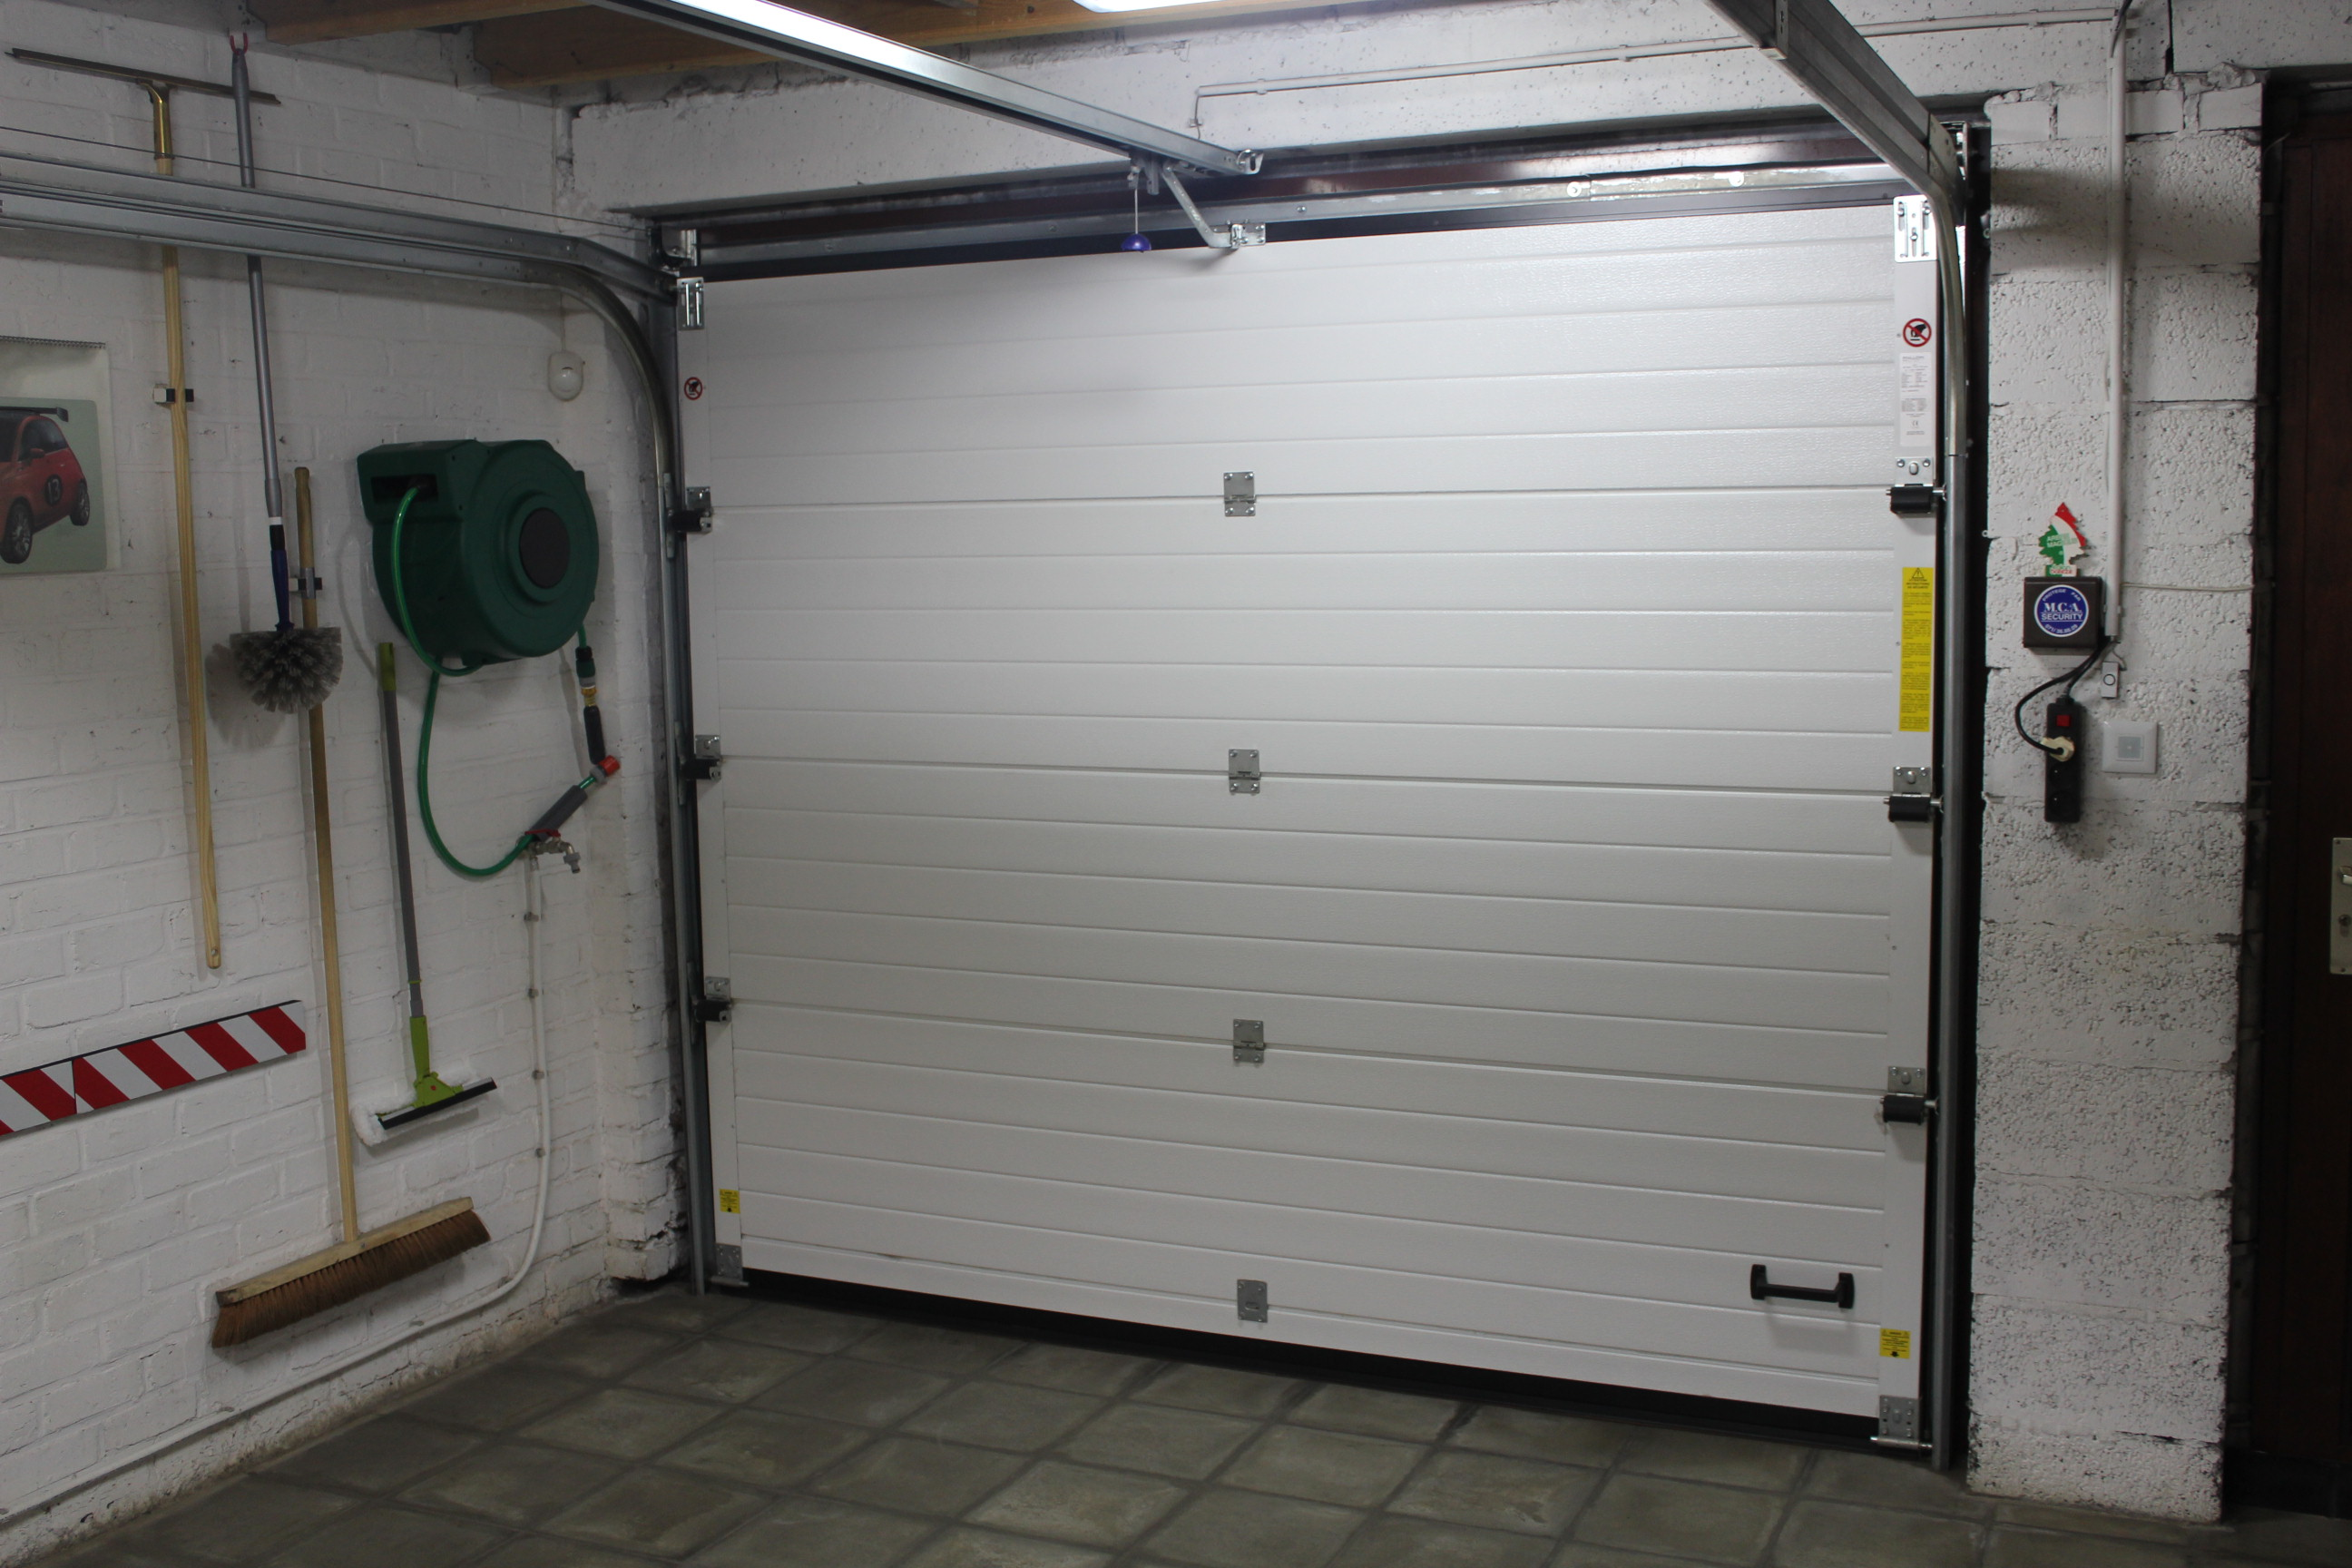 Placement de porte de garage sectionnelle et basculante - Securite pour porte de garage basculante ...